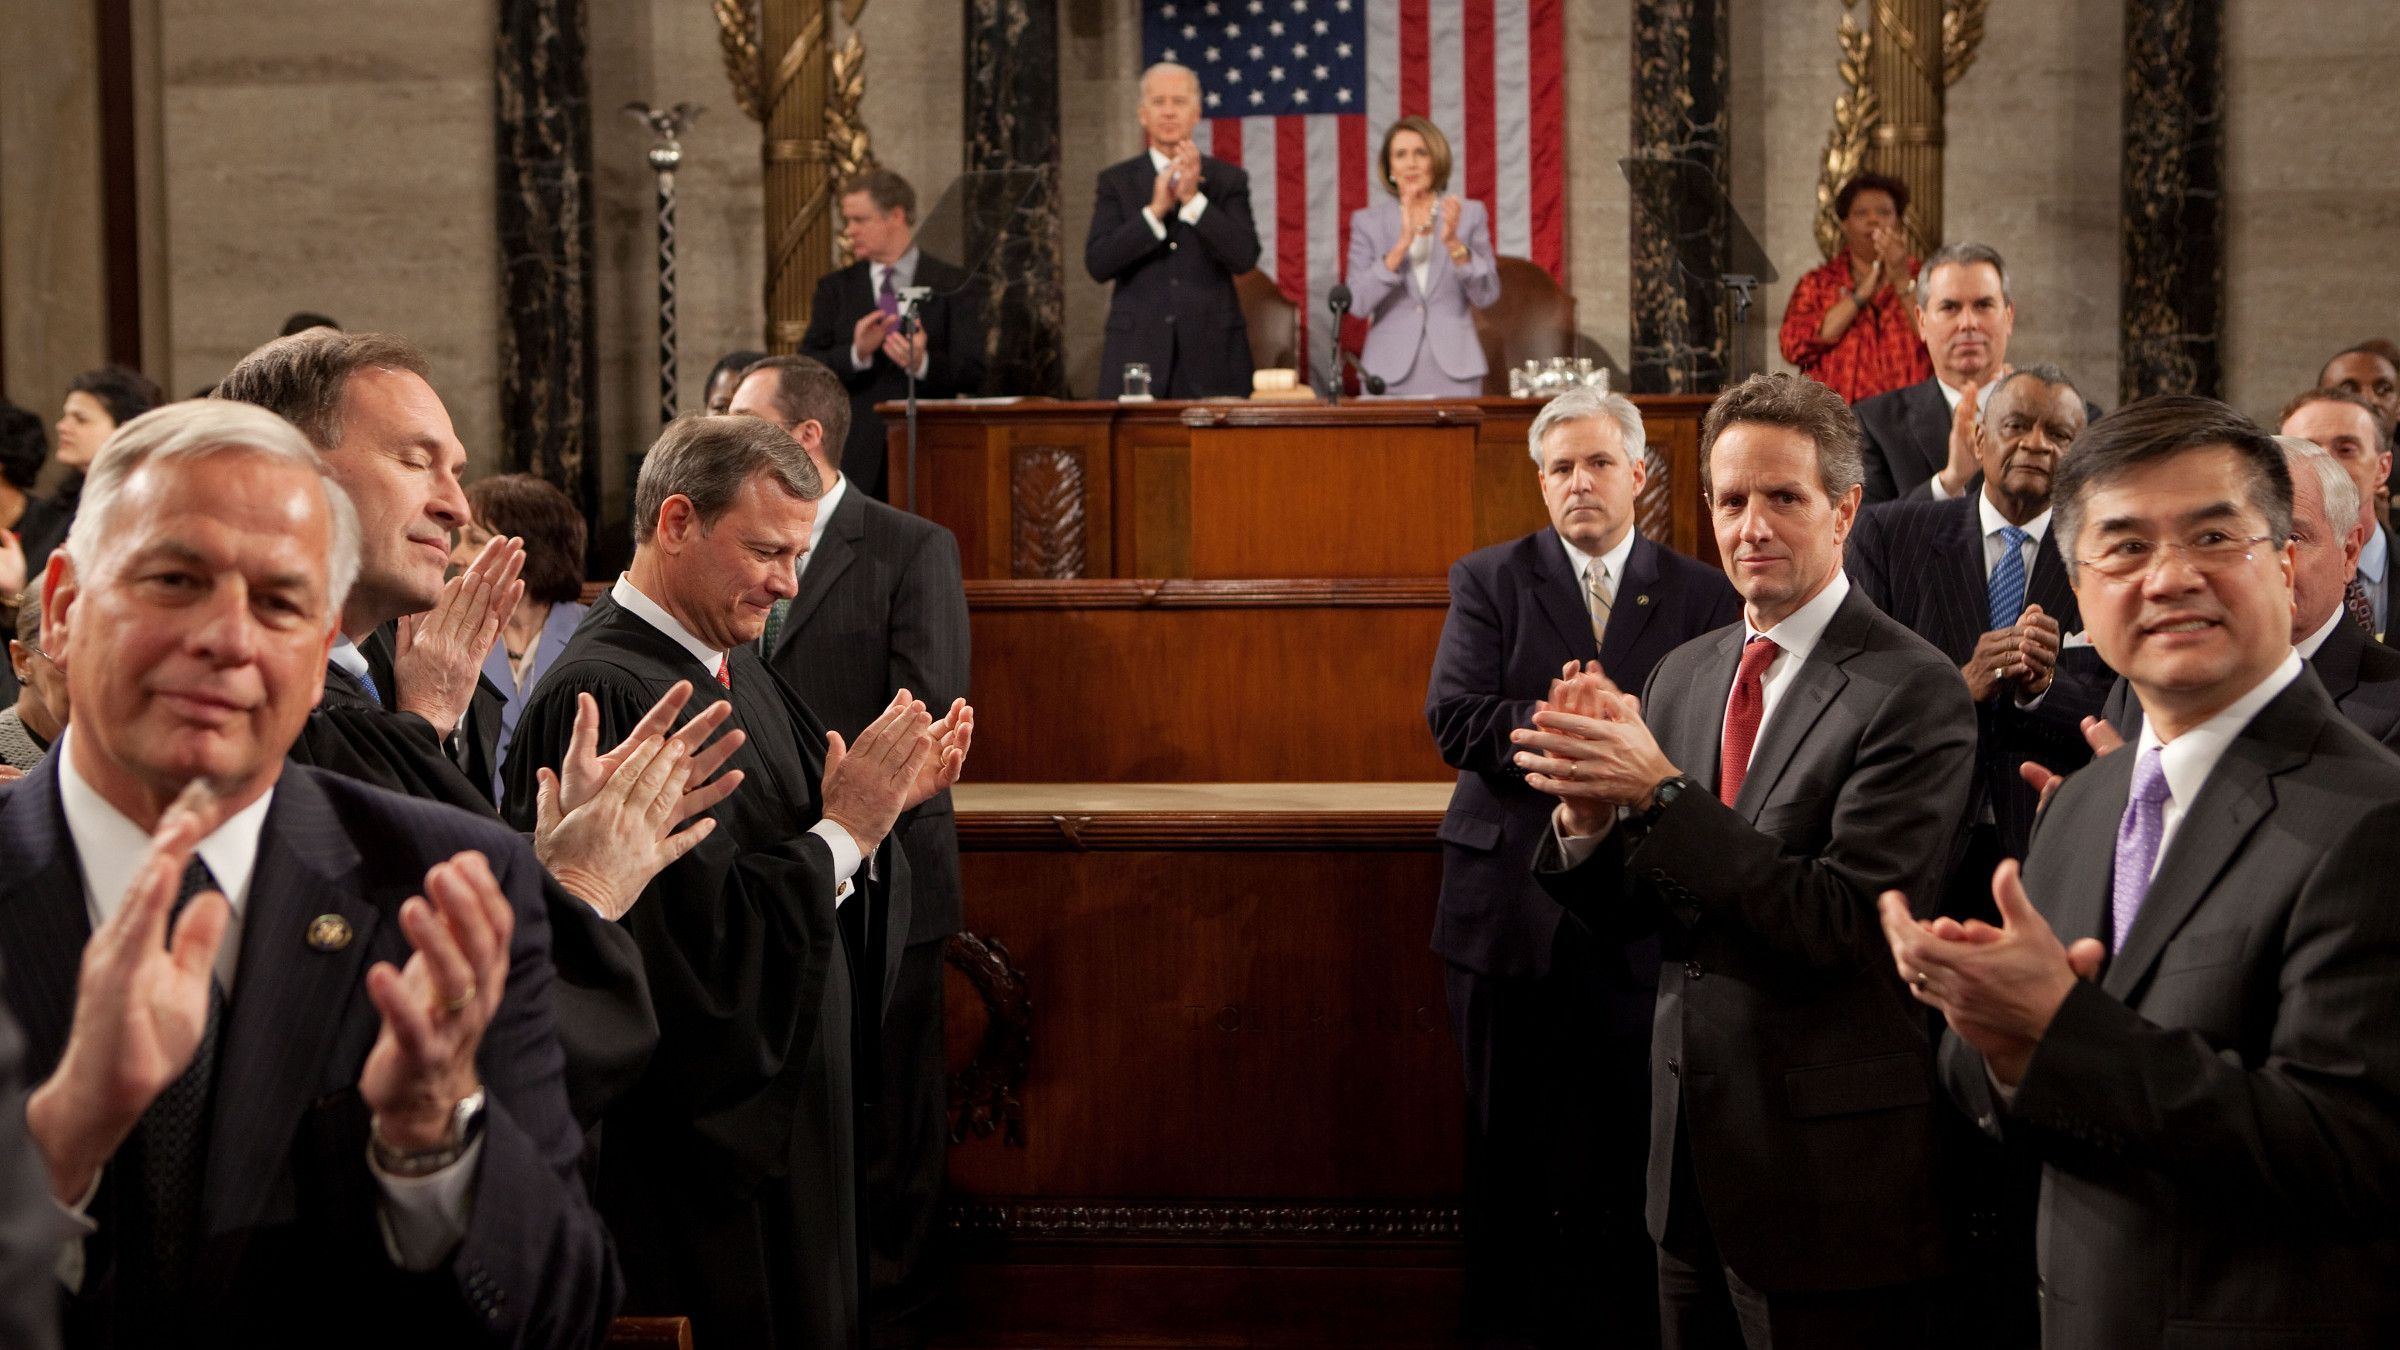 President Barack Obama gives his State of the Union address to a joint session of Congress in the House Chamber of the U.S. Capitol, Jan. 27, 2010.  (Official White House photo by Pete Souza)